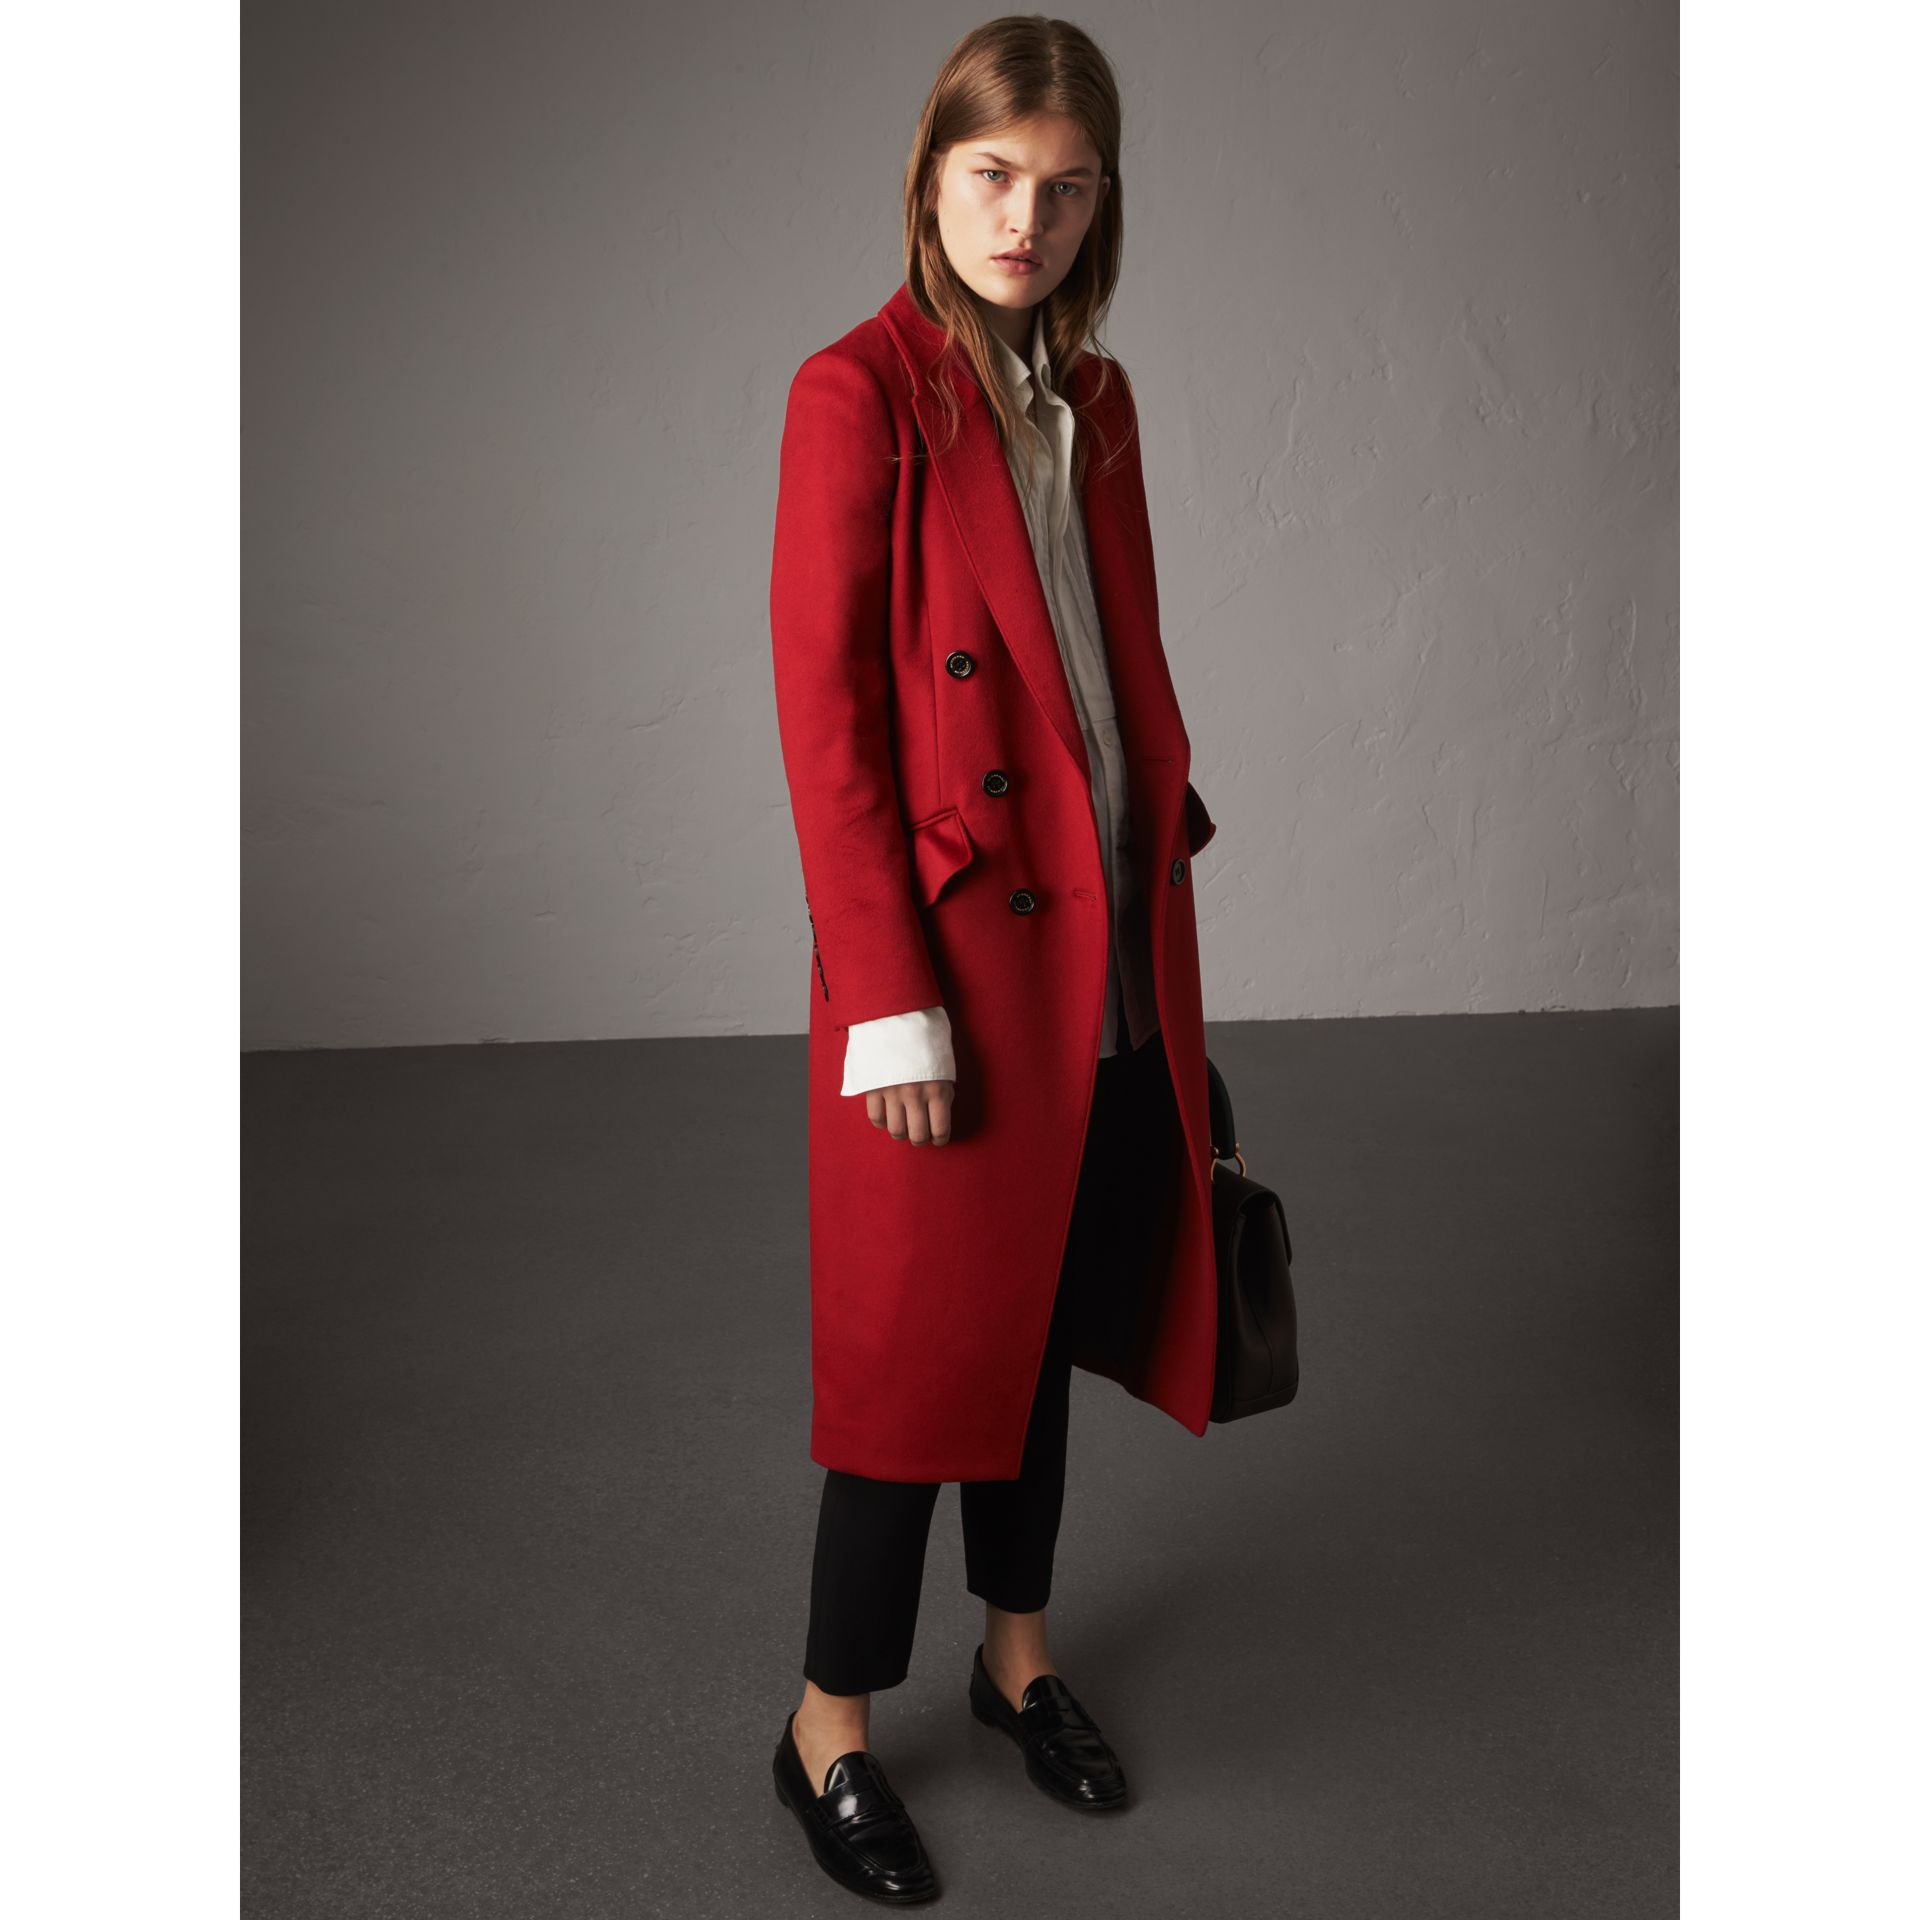 Ruffle Detail Wool Cashmere Tailored Coat in Military Red - Women | Burberry Australia - gallery image 1